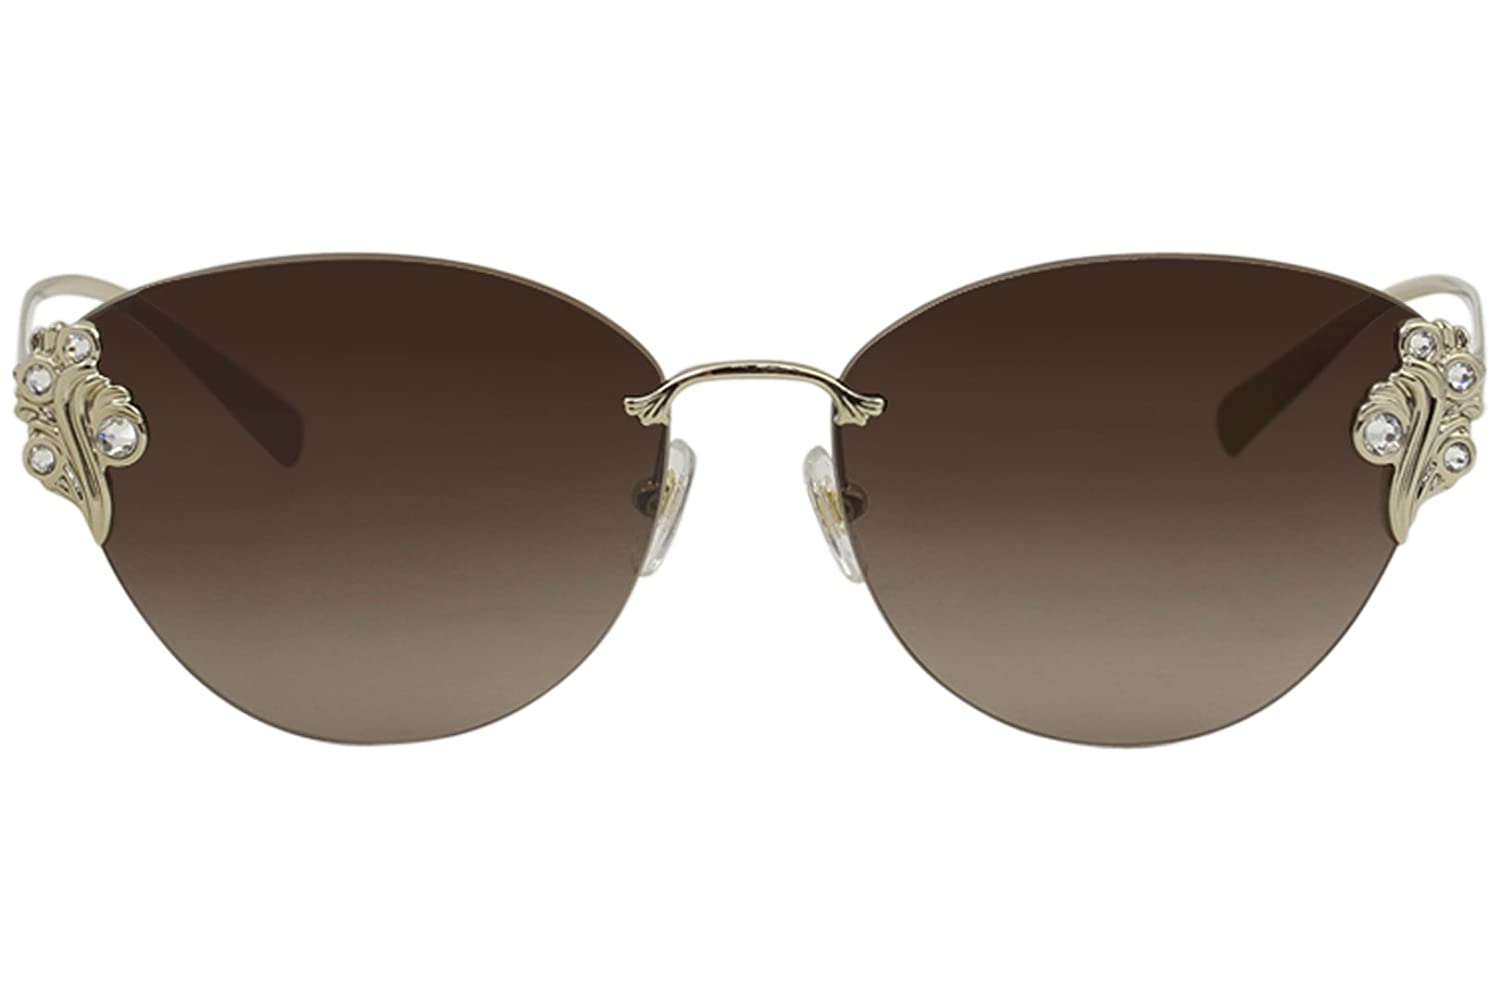 Versace VE2196B Sunglasses 125213-58 Pale Gold Frame Brown Gradient VE2196B-125213-58